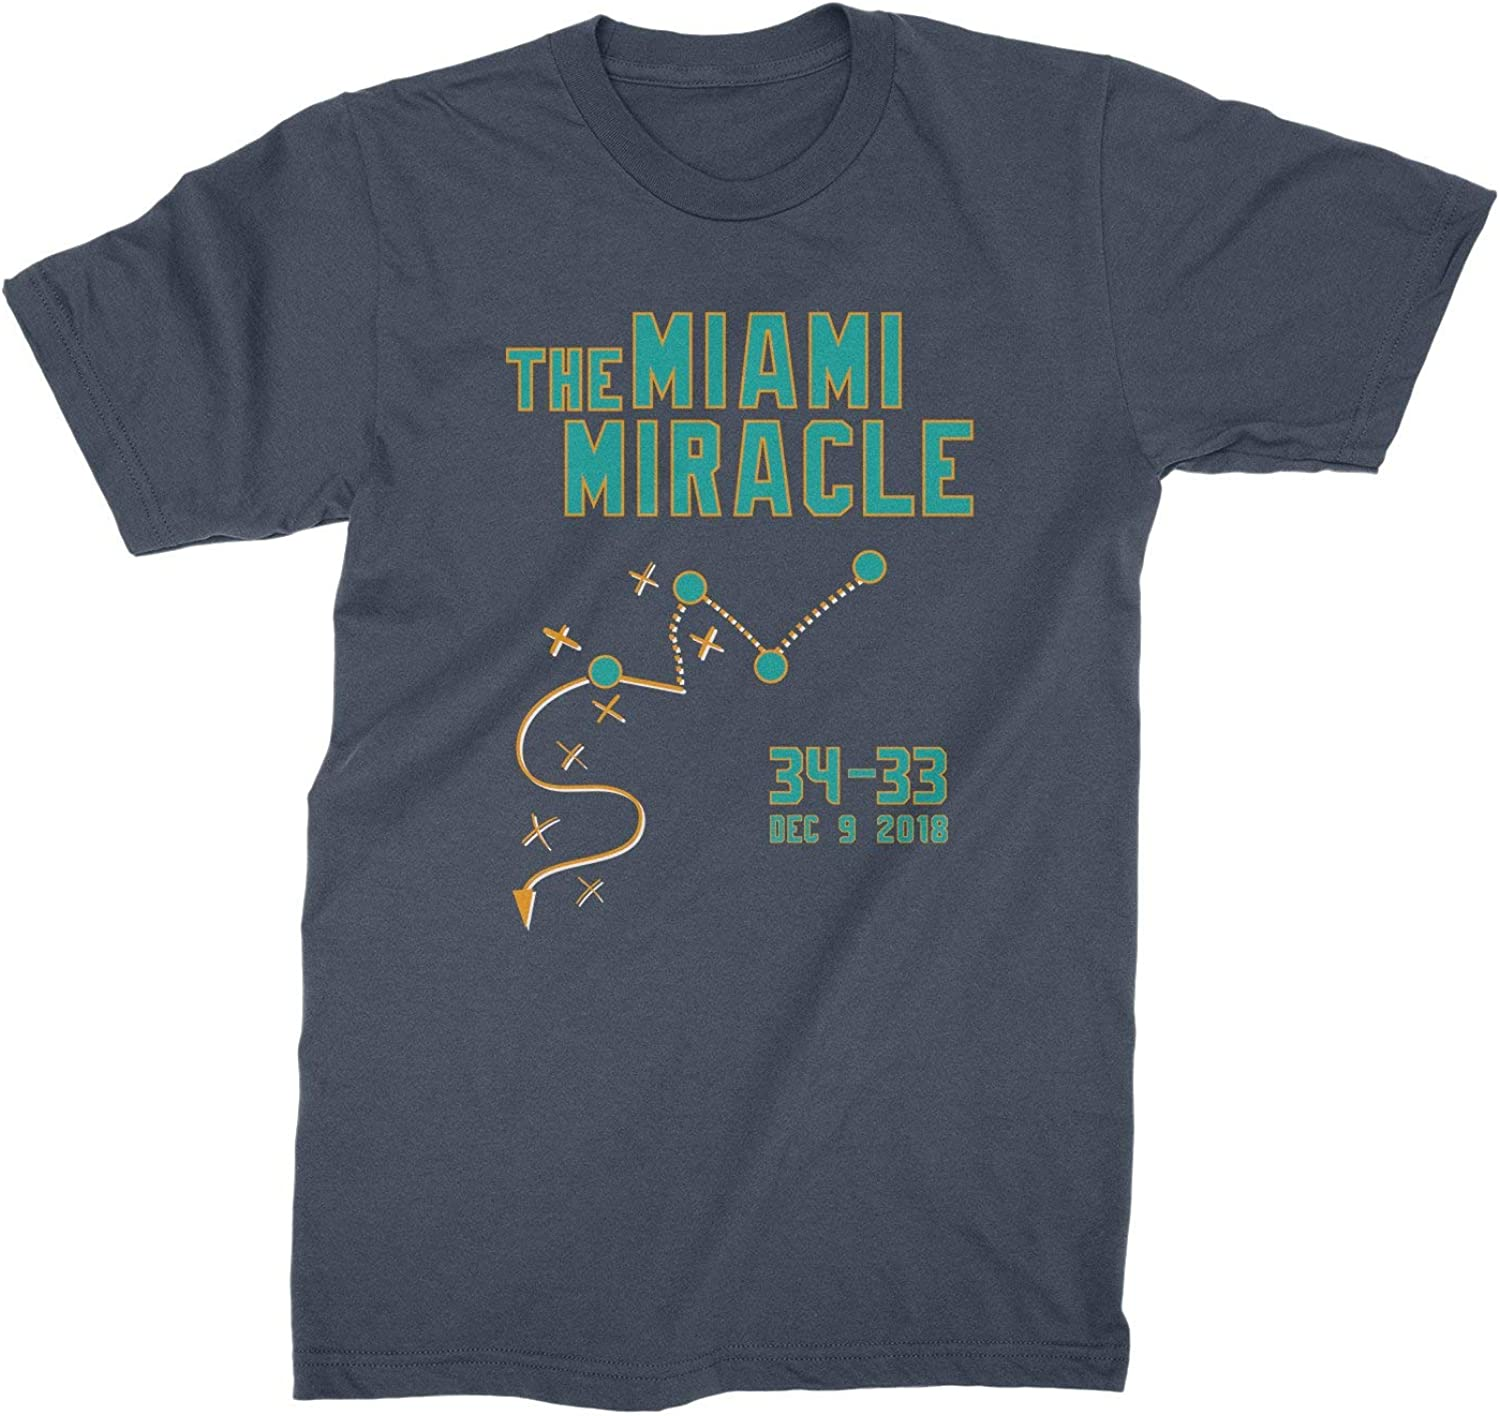 Miami Miracle Shirt 34-33 Tshirt